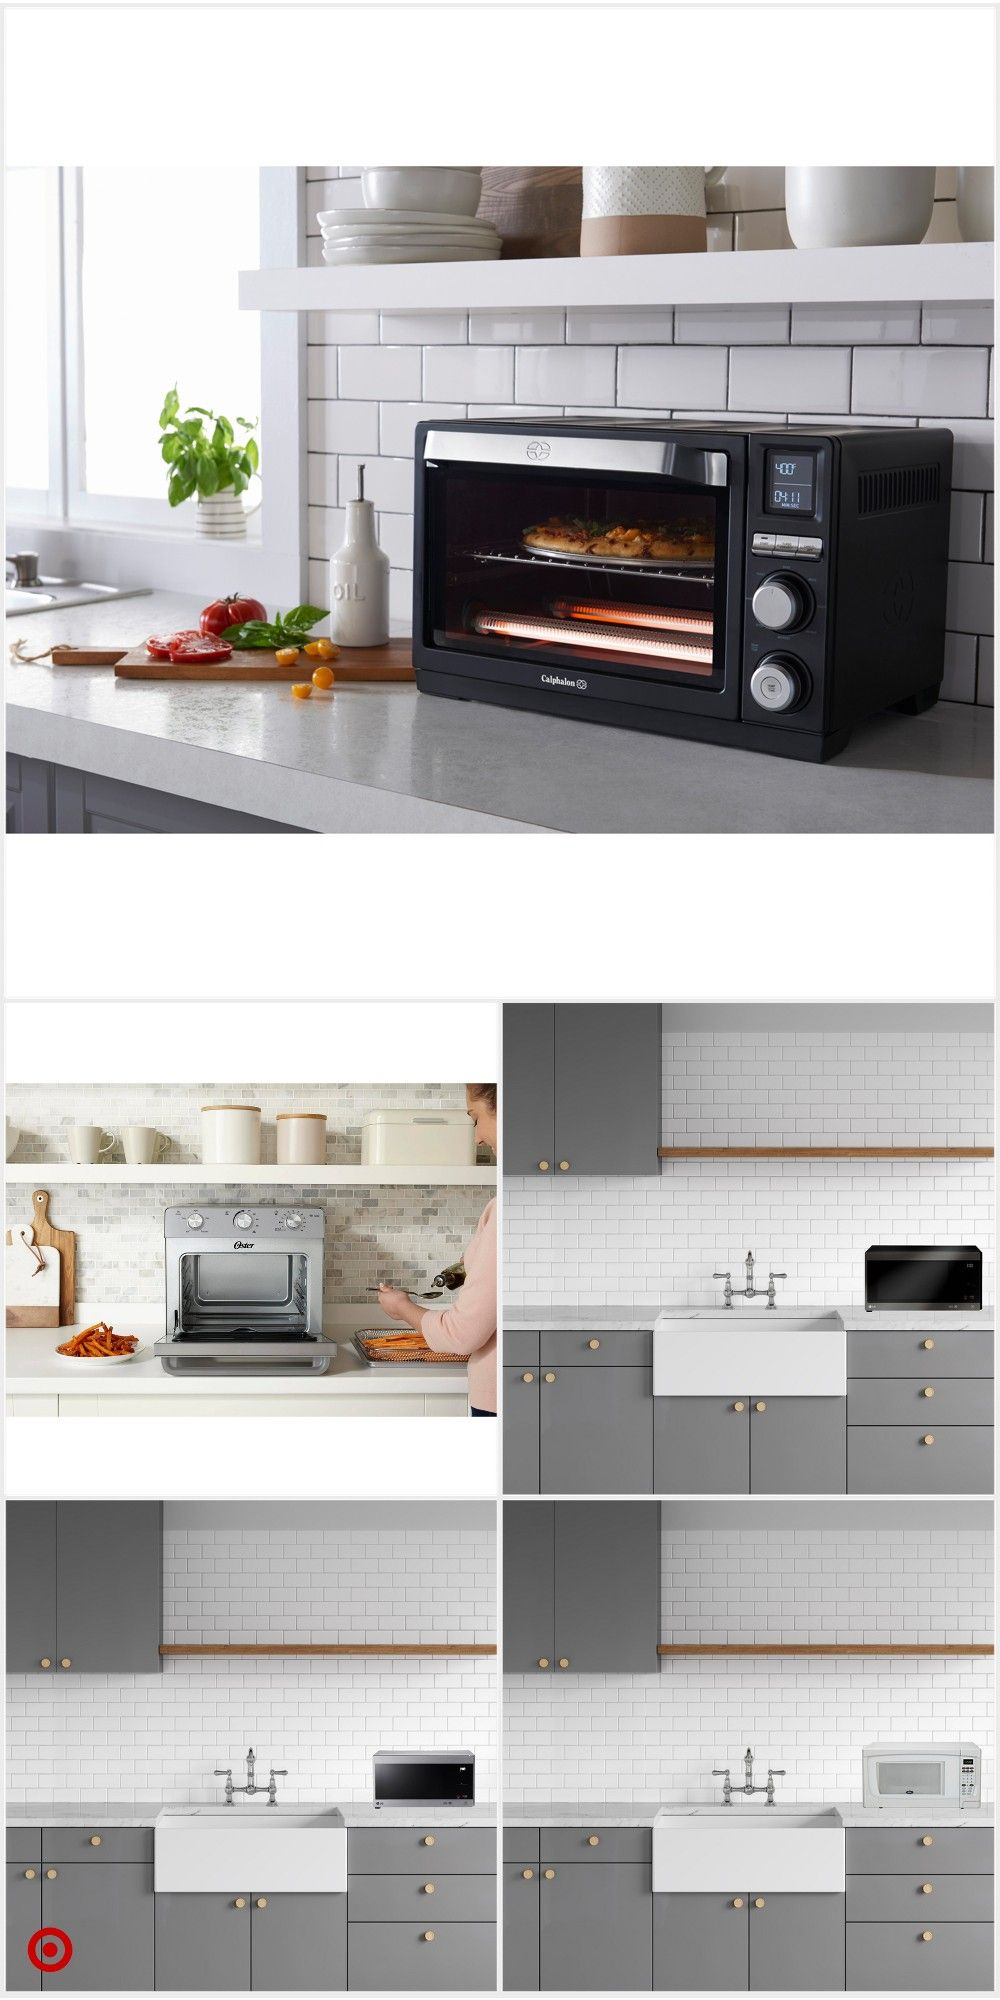 Shop Target For Countertop Ovens You Will Love At Great Low Prices Free Shipping On Orders Of 35 O In 2020 Countertop Oven Countertops White Countertops